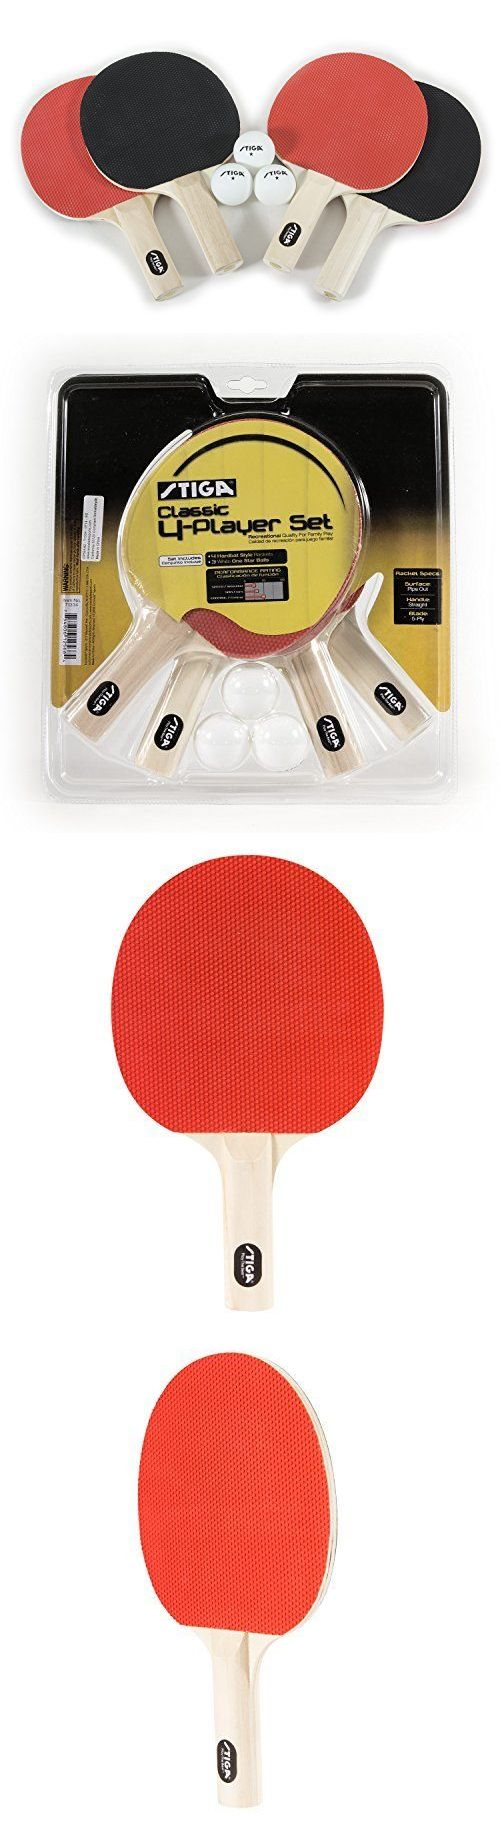 Paddles 36277: Table Tennis Rackets 4 Player Ping Pong Bat 3 Balls Racket Paddle Sport Set -> BUY IT NOW ONLY: $49.8 on eBay!